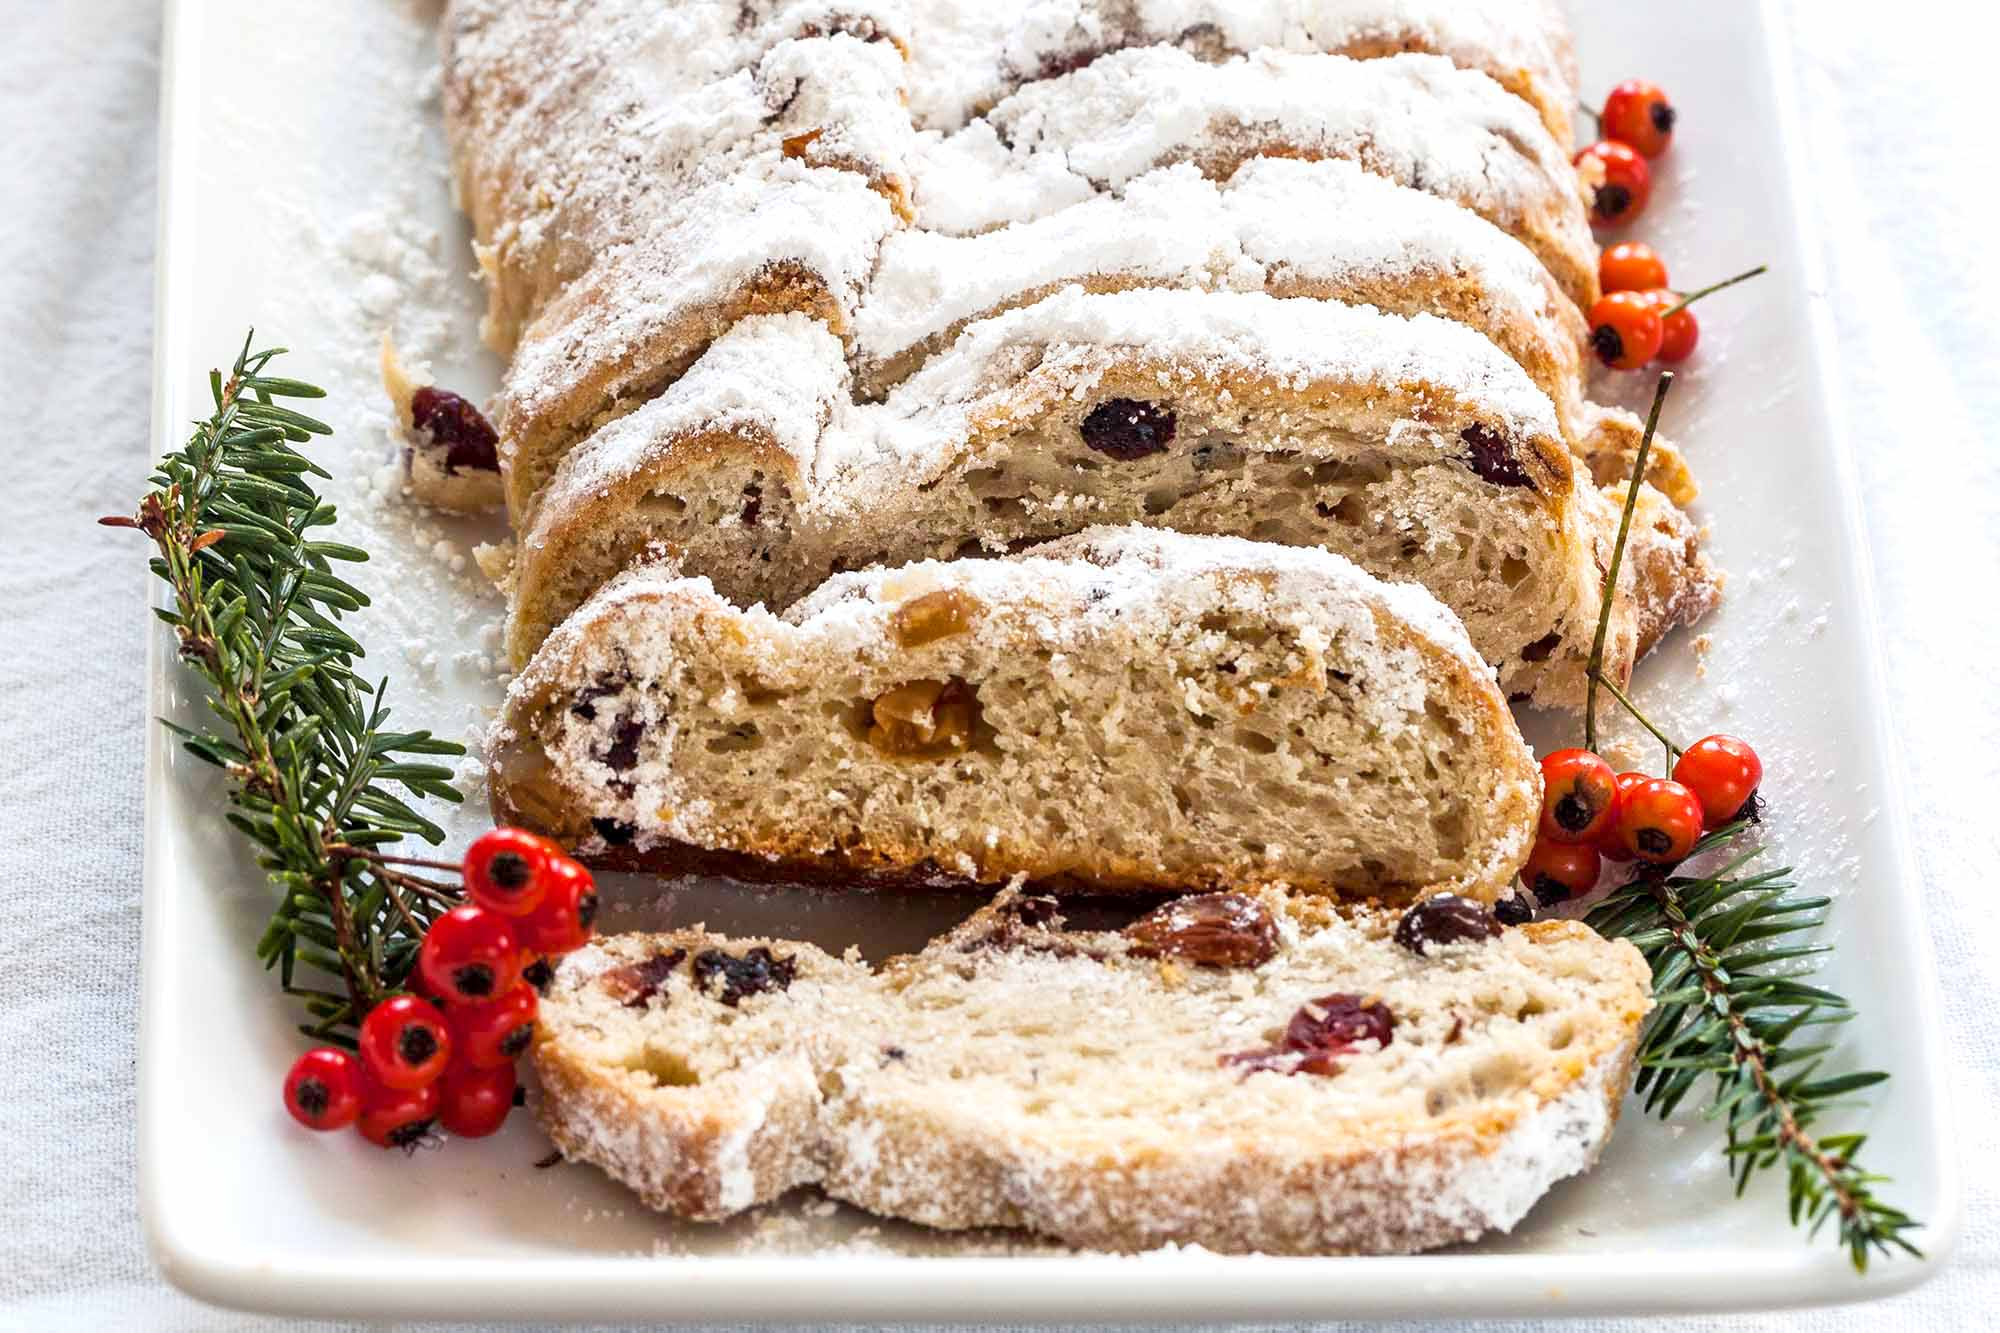 Stollen Christmas Bread filled with rum-soaked dried fruit coated with powdered sugar and sliced on a platter with a fine mesh sieve with powdered sugar with pine sprigs and berries nearby.